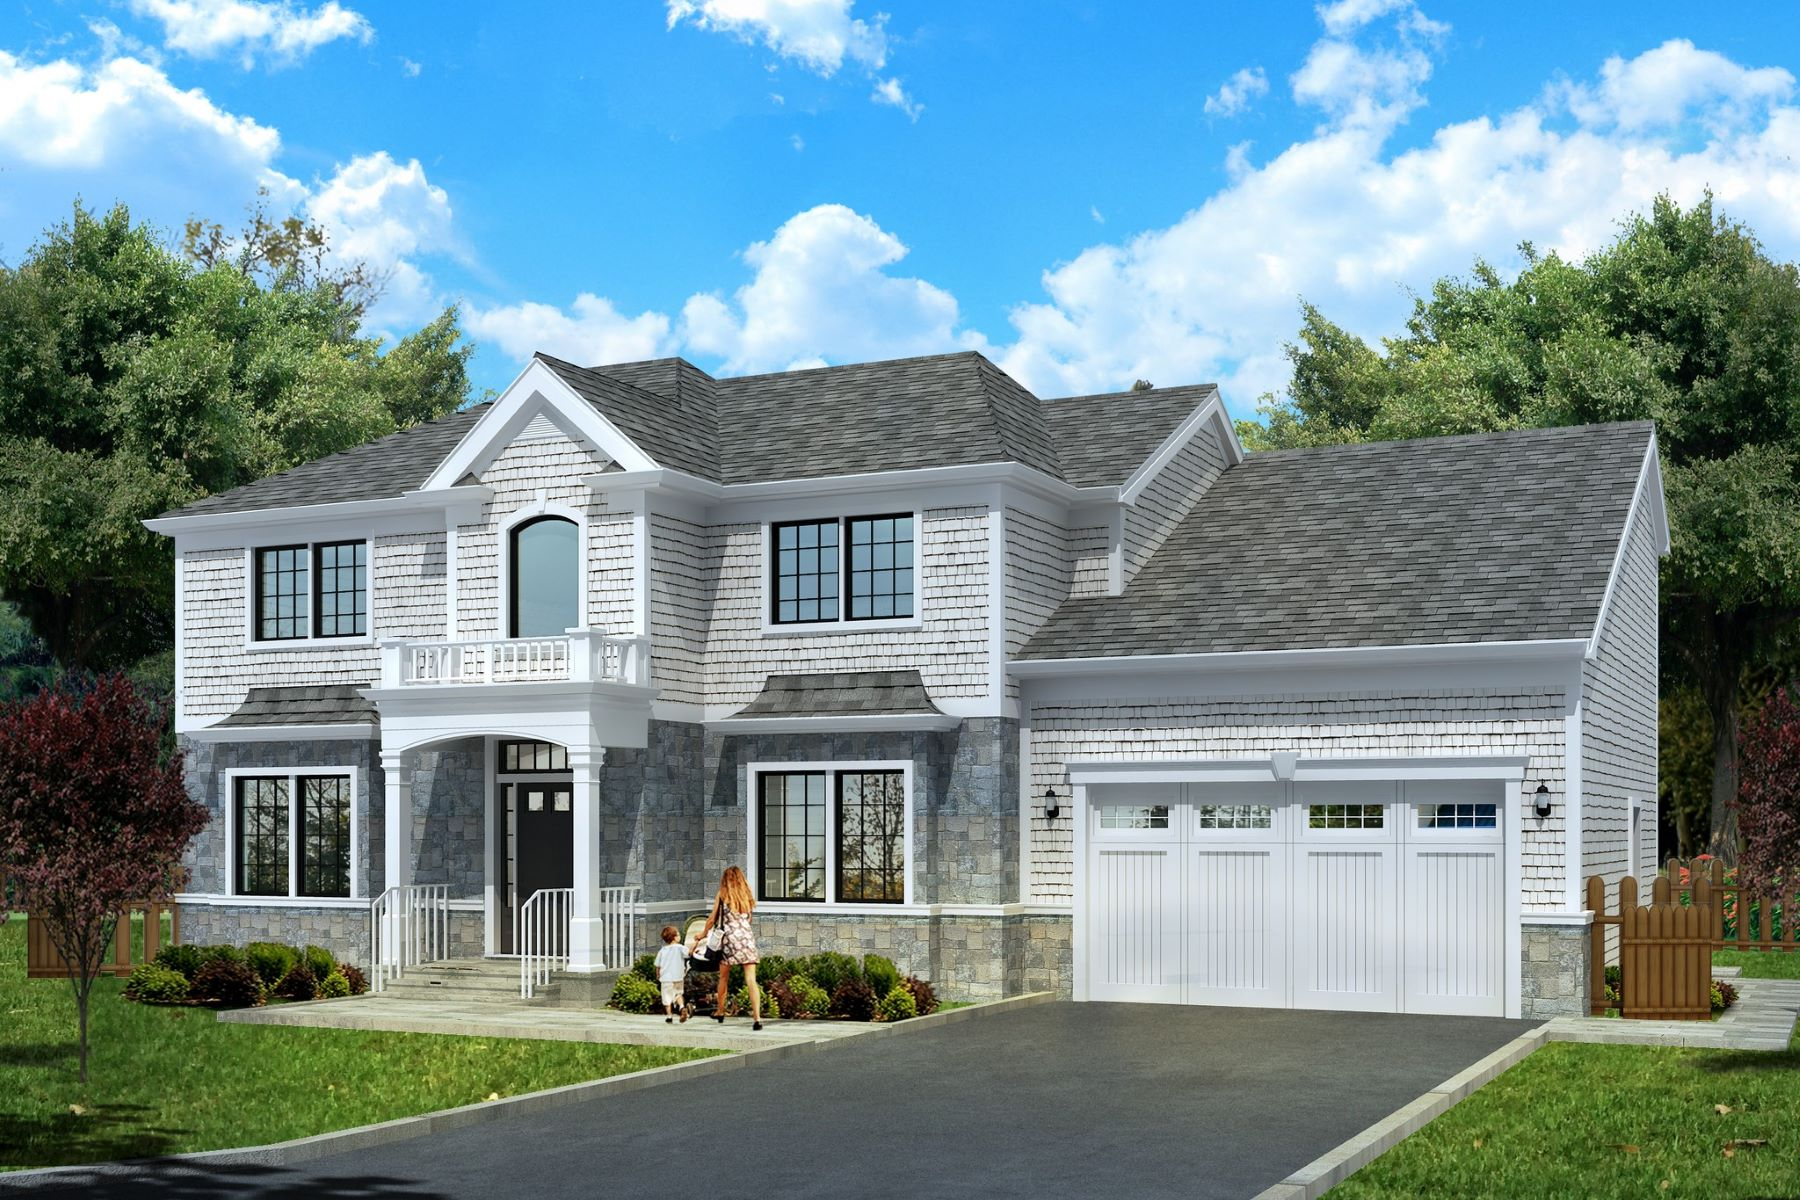 Single Family Homes for Sale at Roslyn Heights 6 West Court Roslyn Heights, New York 11577 United States